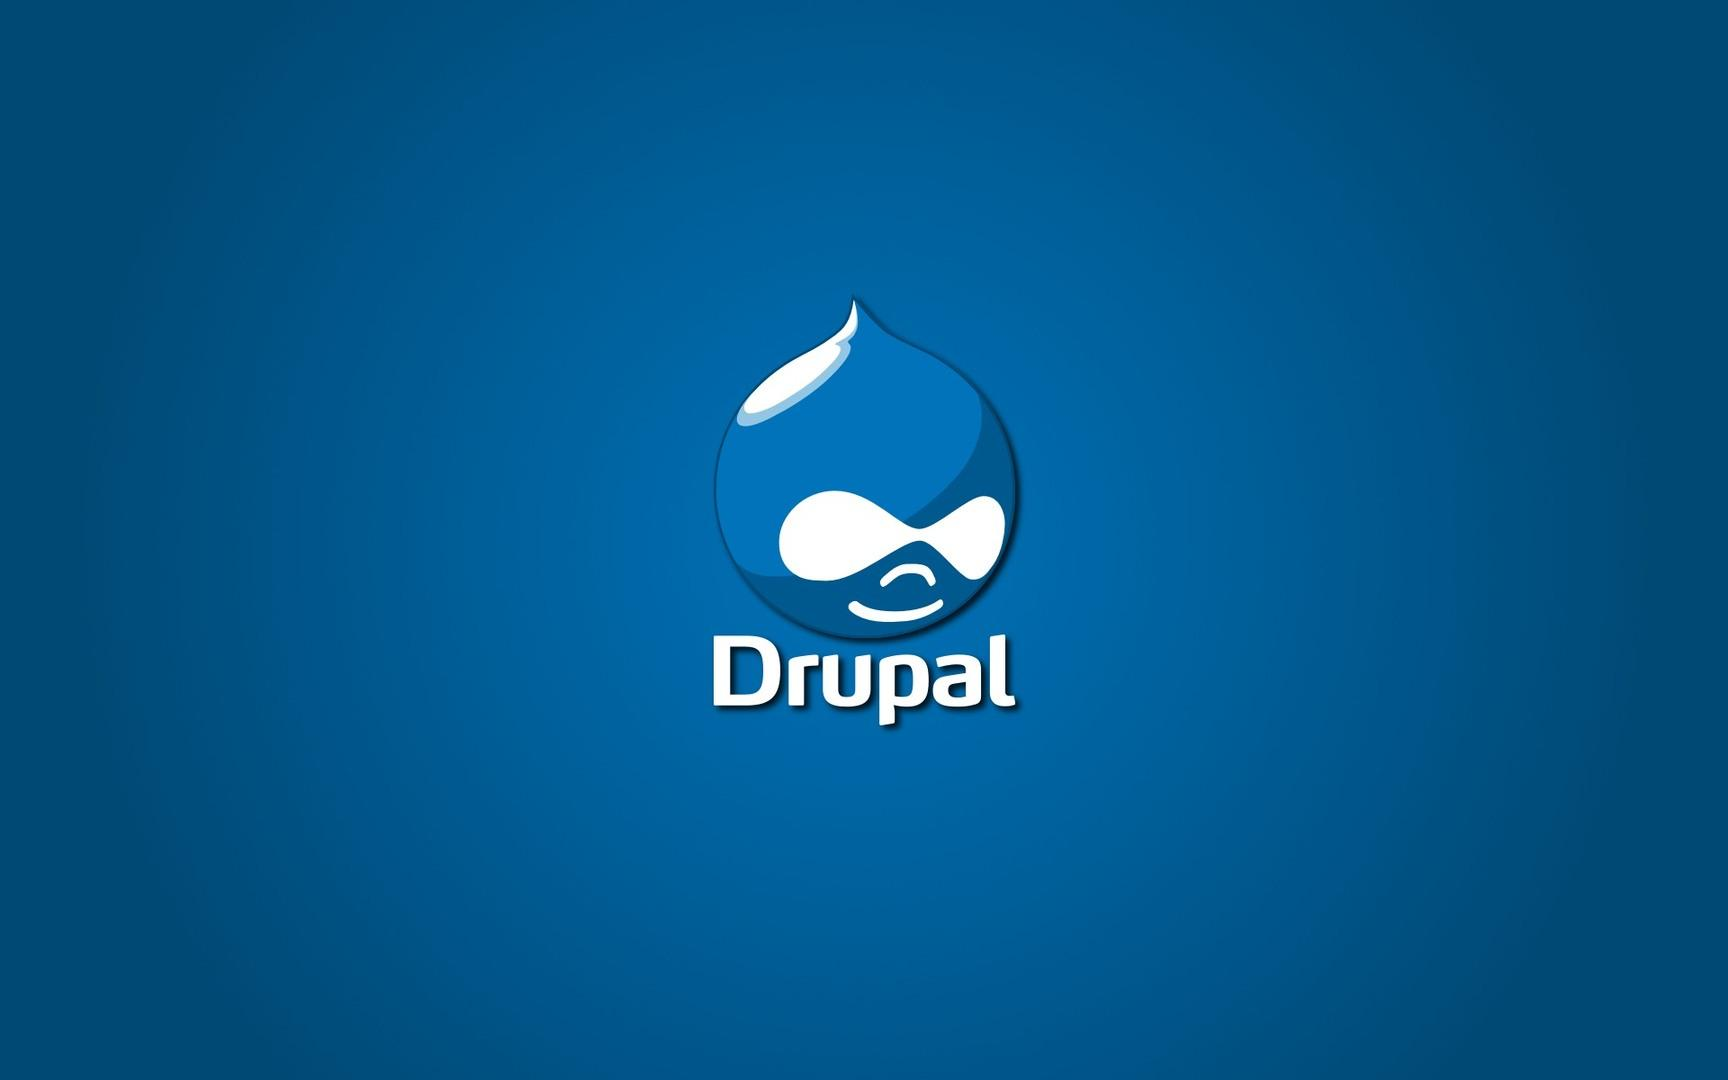 7 Websites for Finding Drupal Jobs